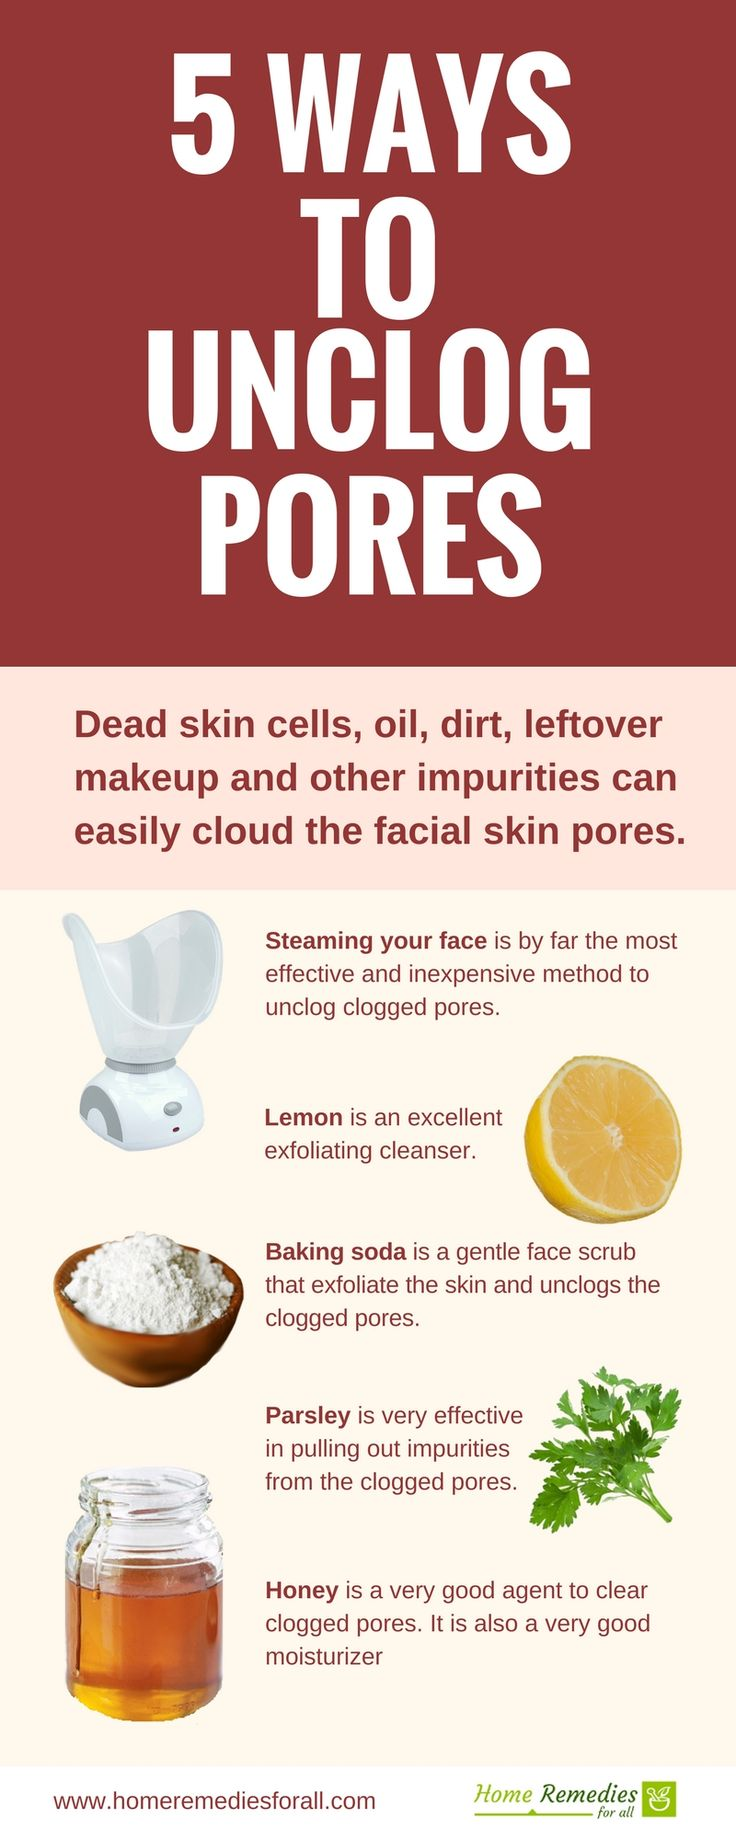 unclog your clogged skin pores with these 5 simple but very effective home remedies and give your skin the youthful look again.